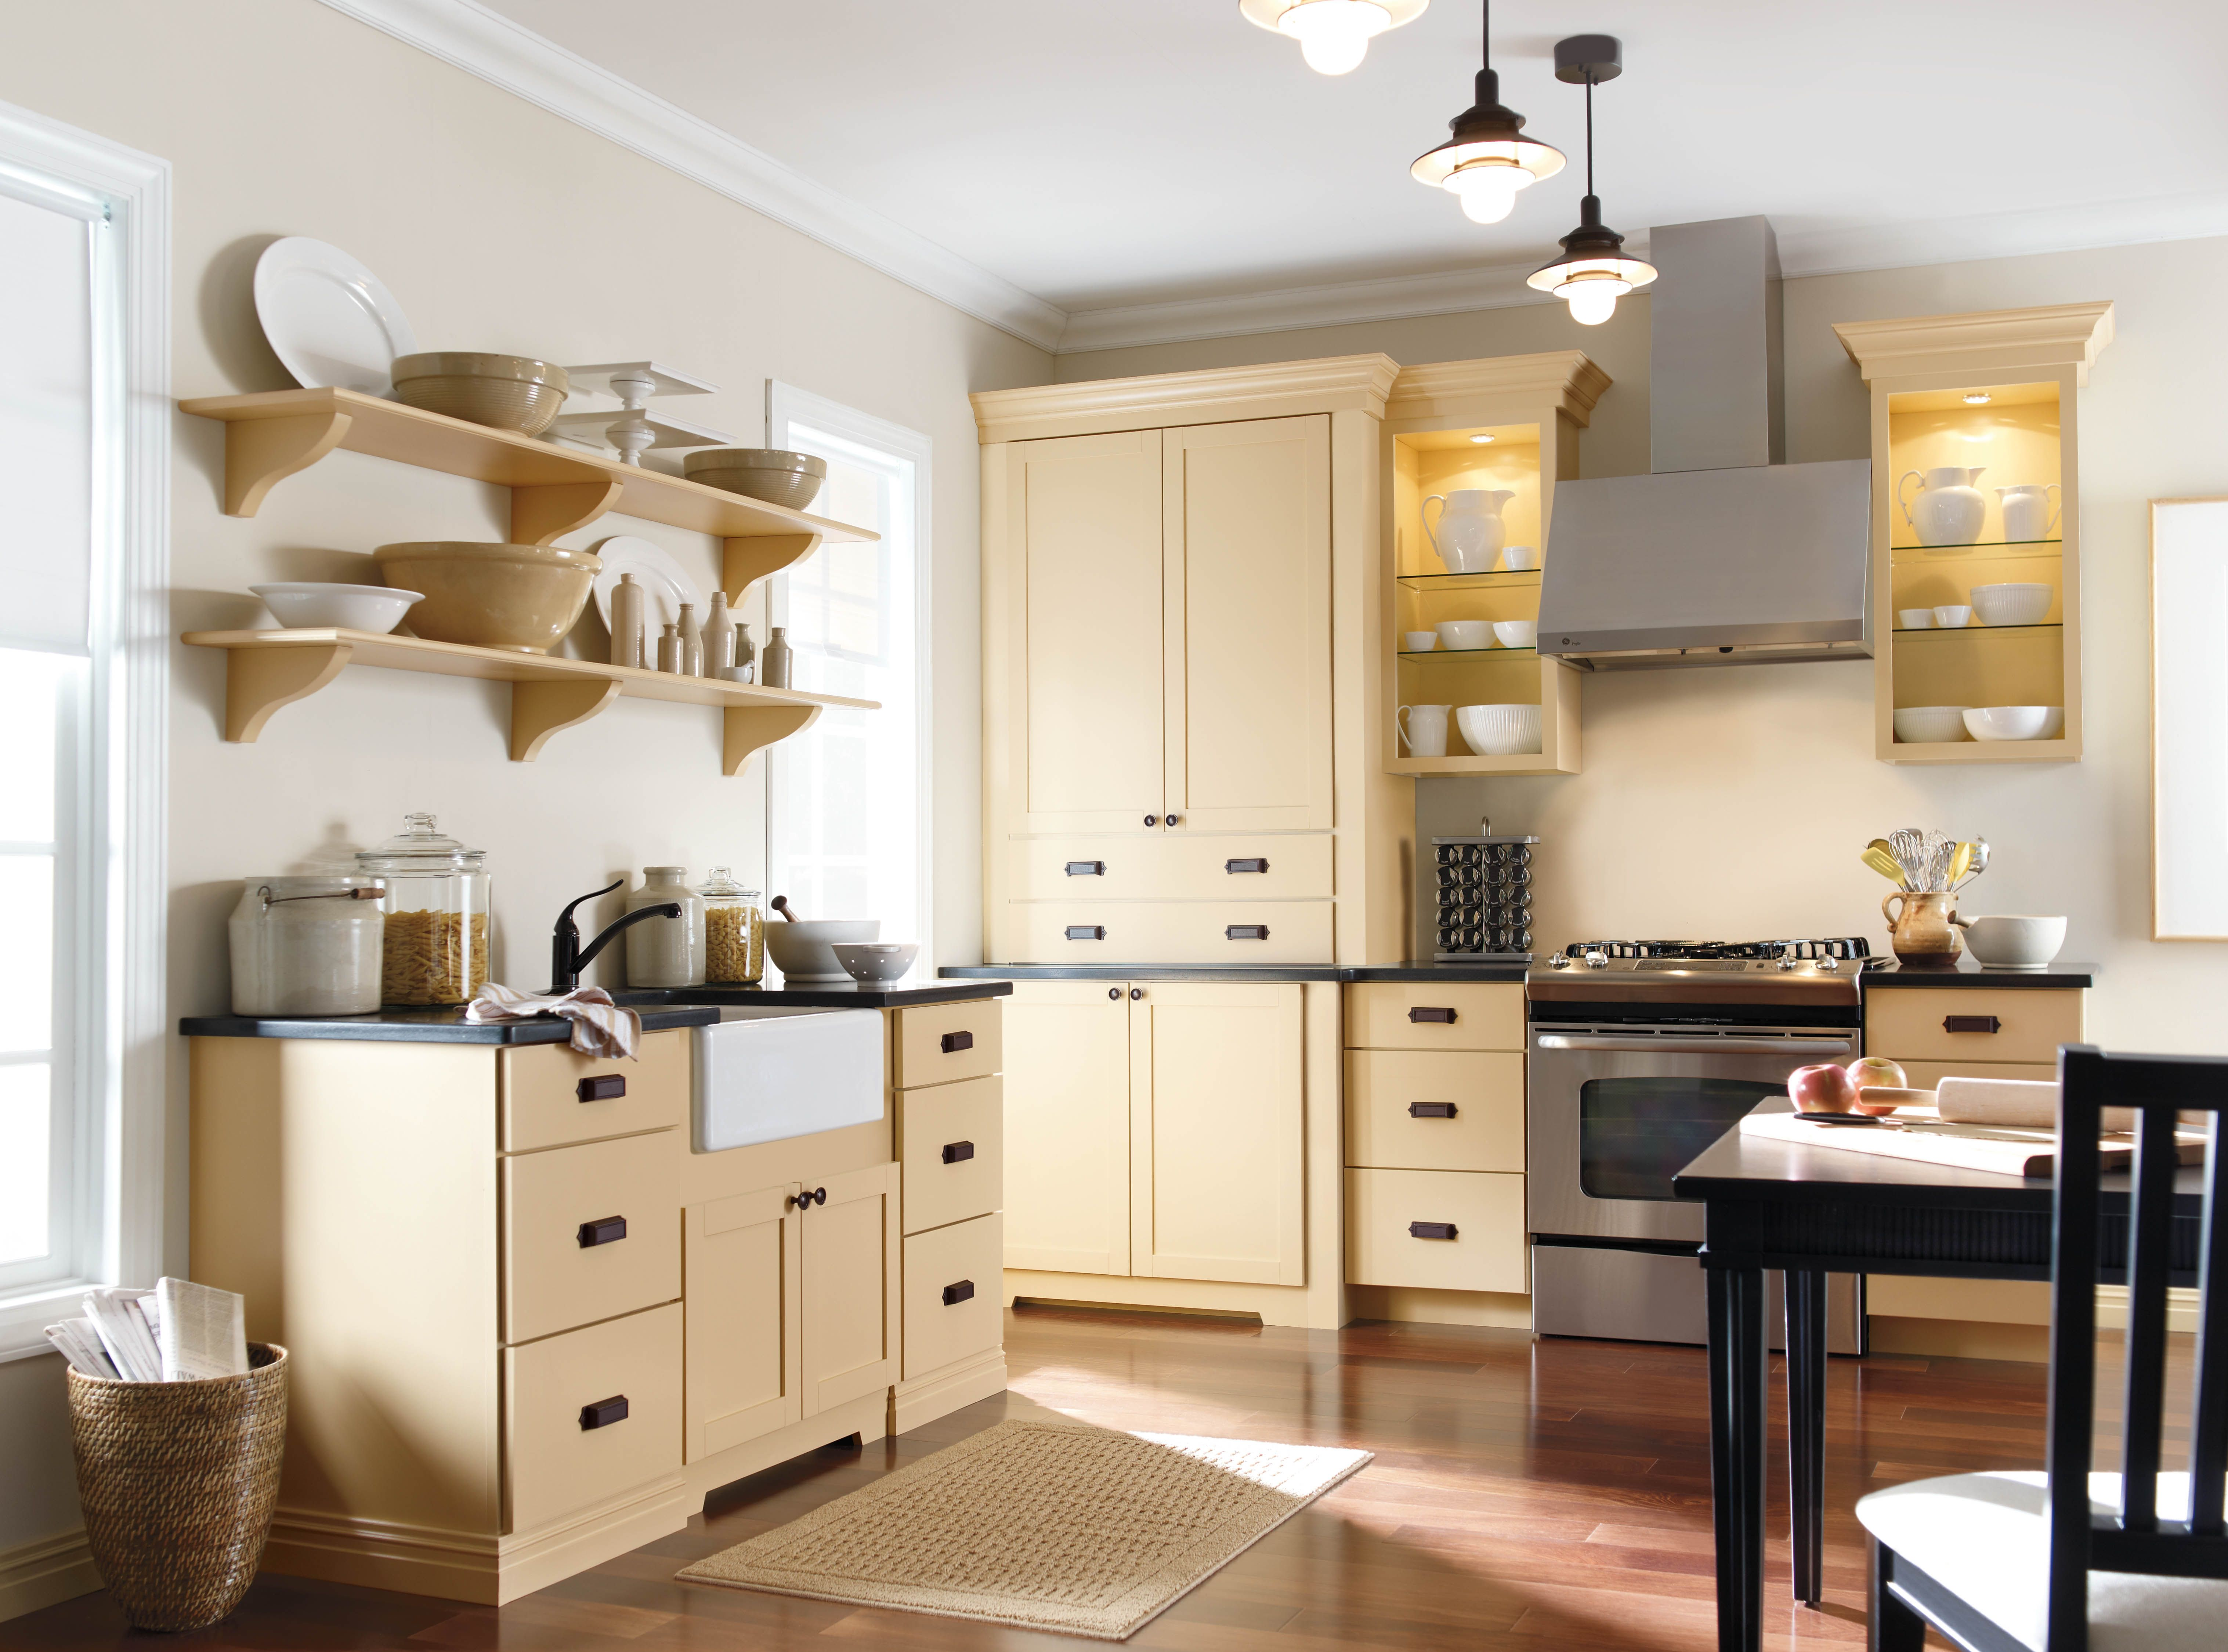 spectacular kitchen ideas cabinets above stewart for idea wall martha decorating